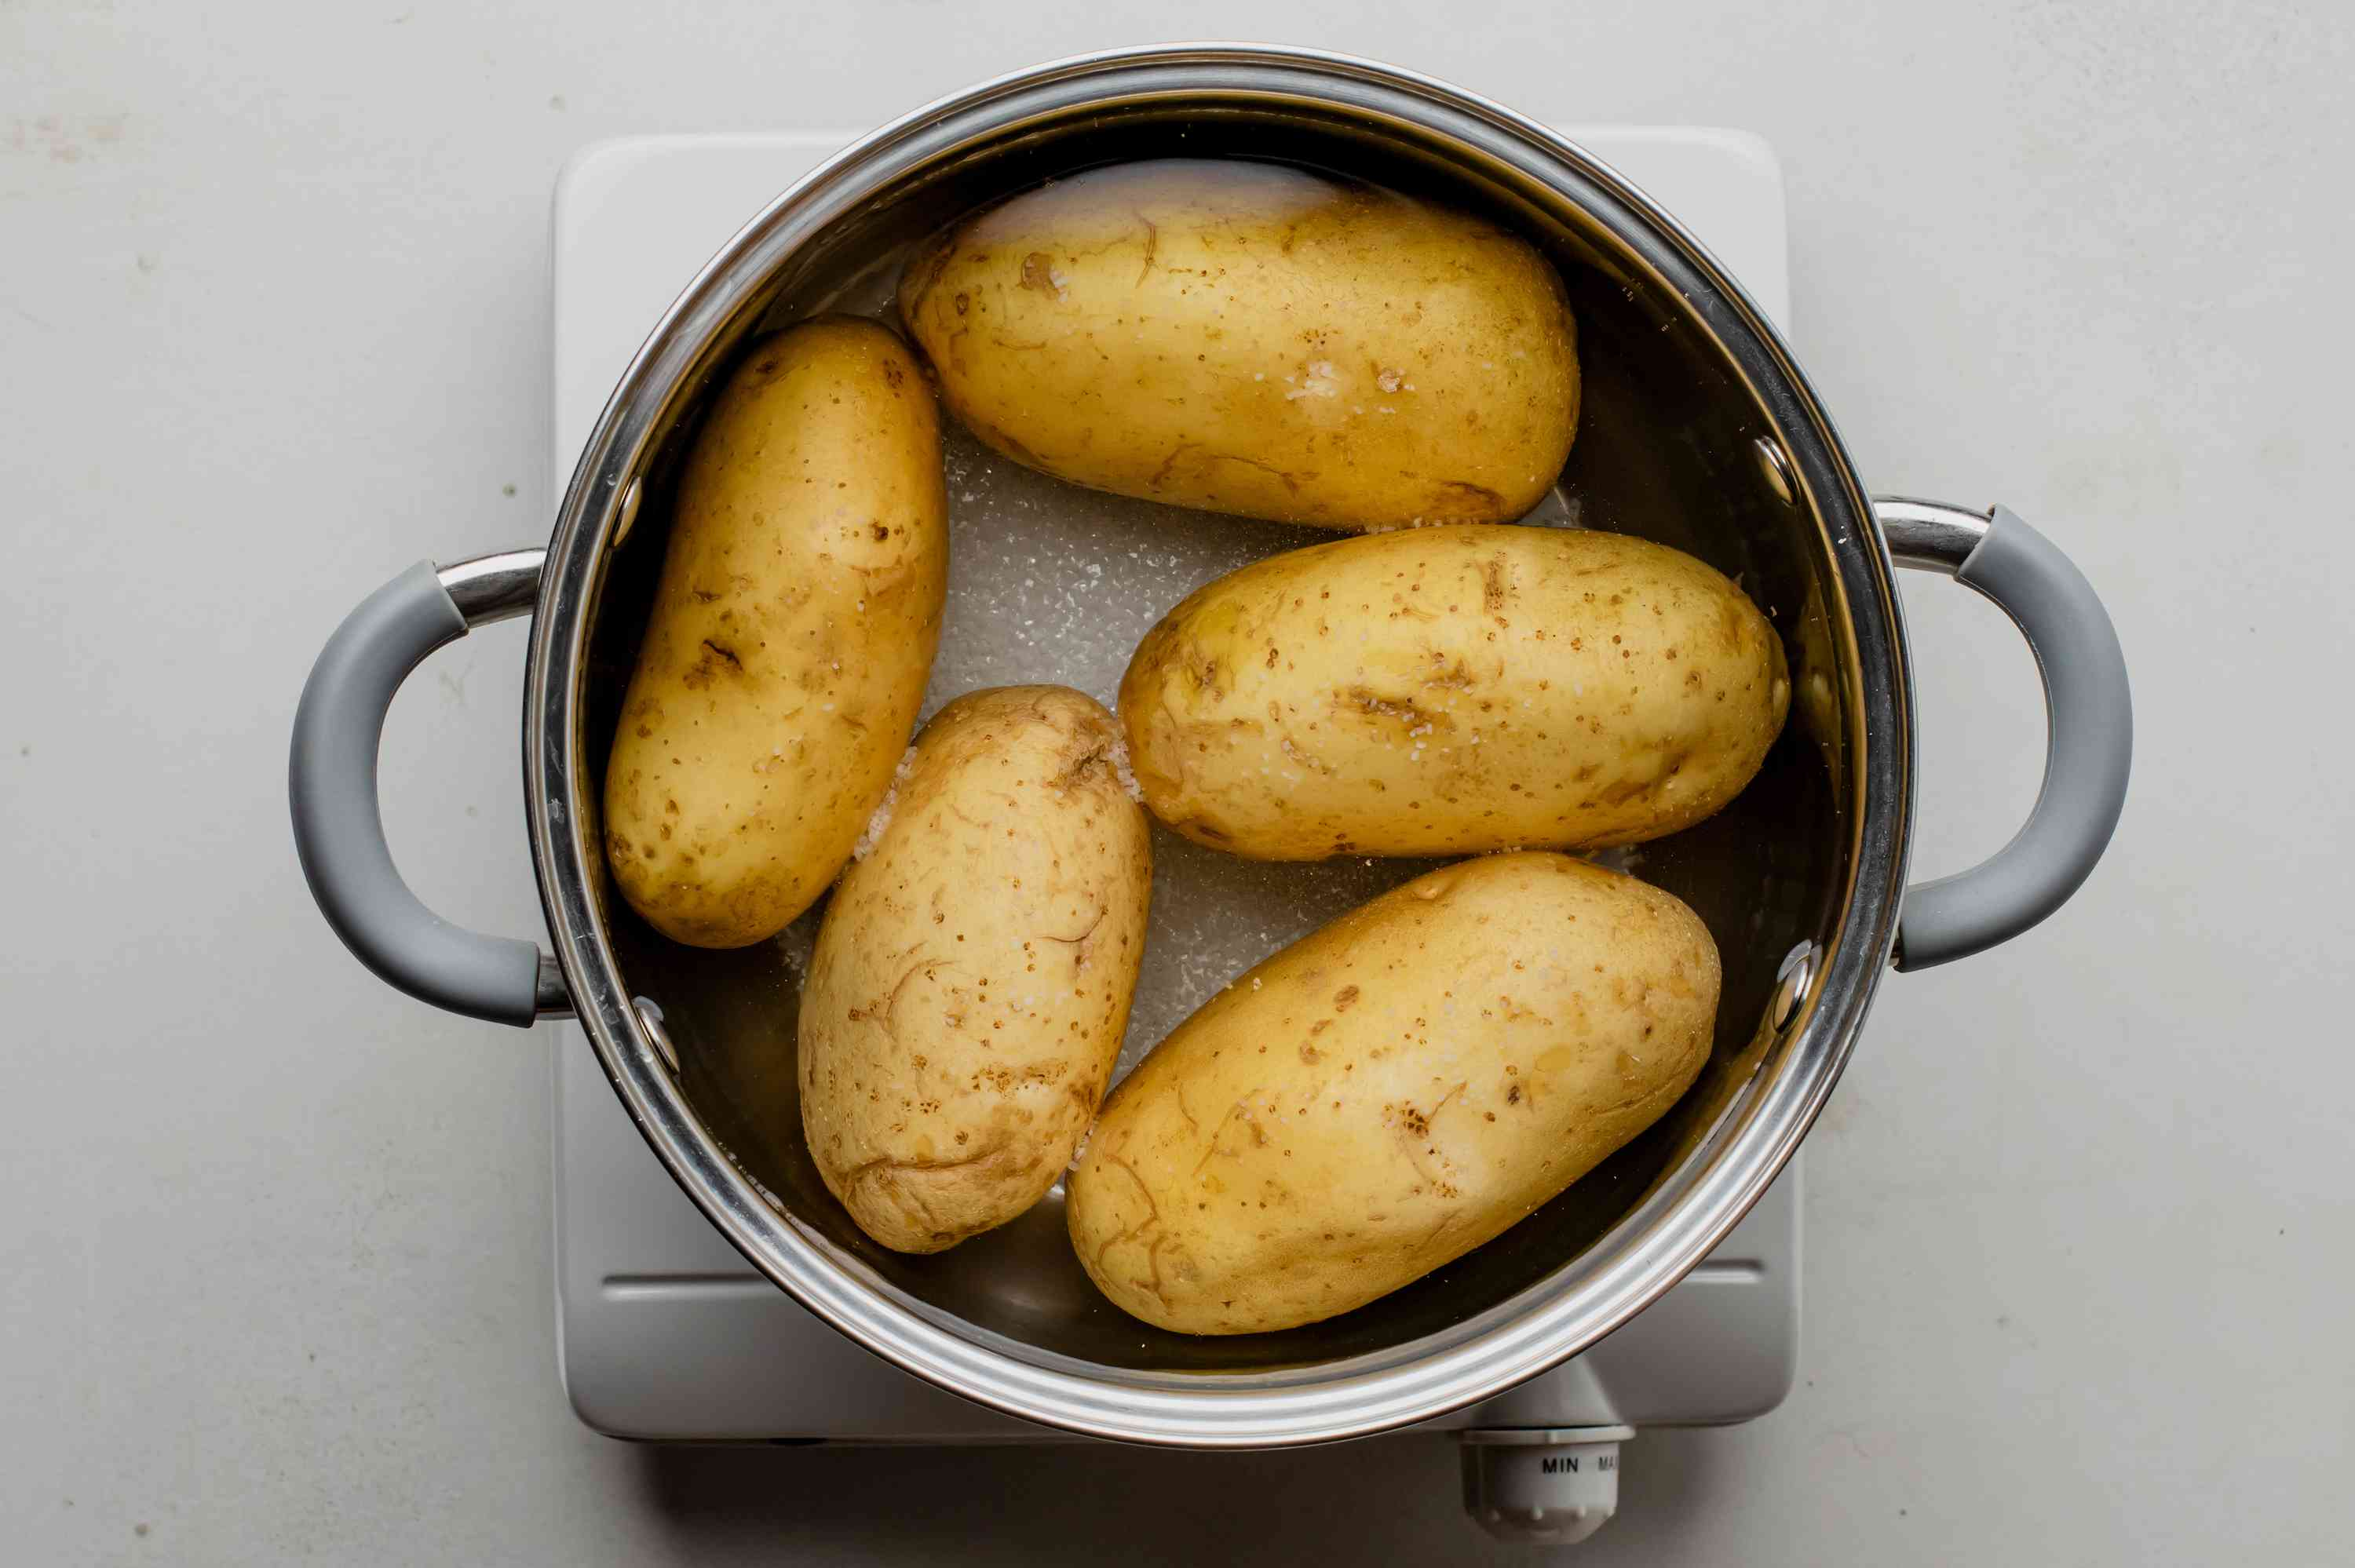 Parboiling potatoes